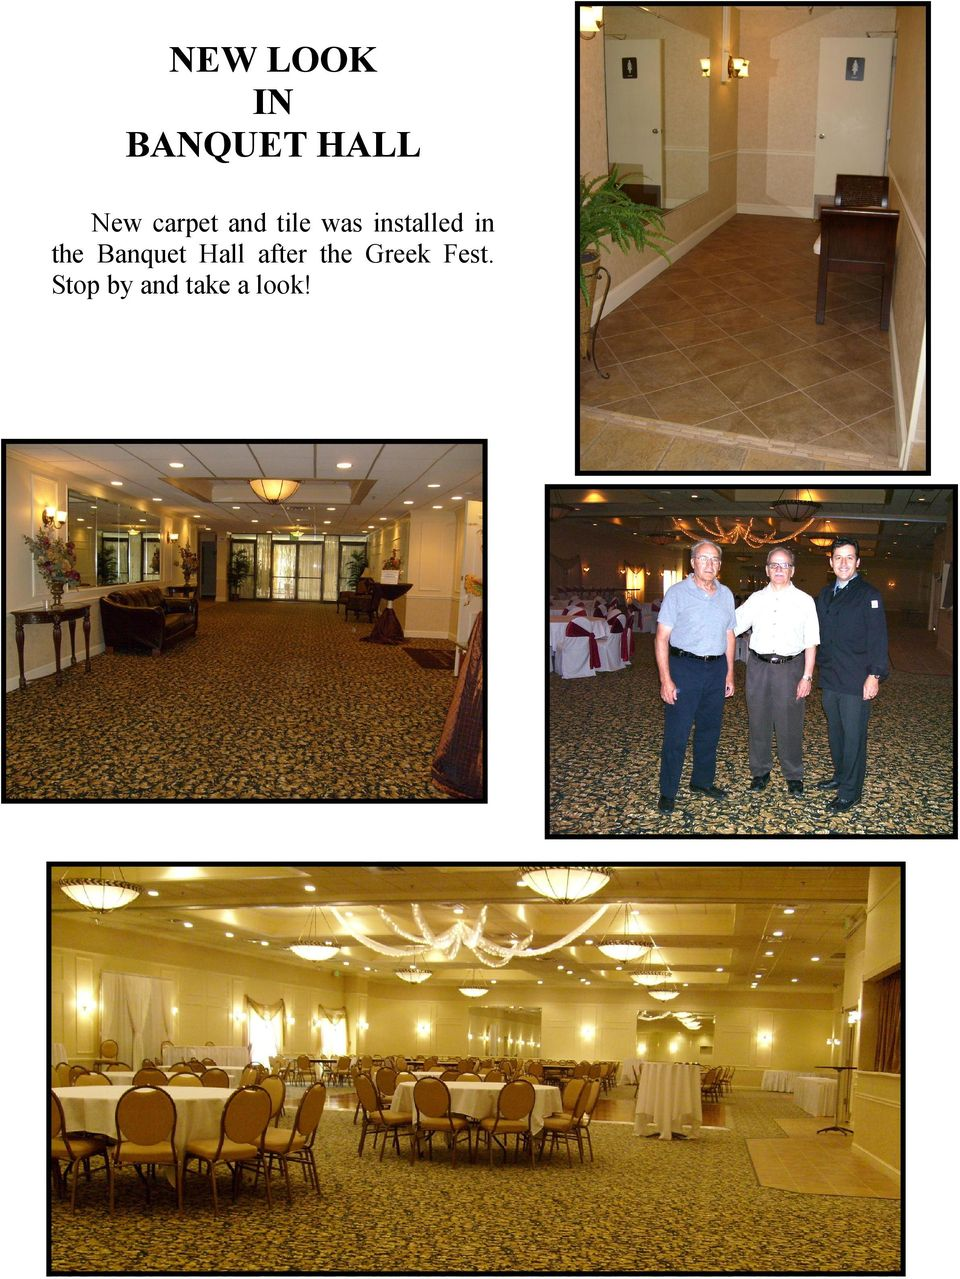 in the Banquet Hall after the